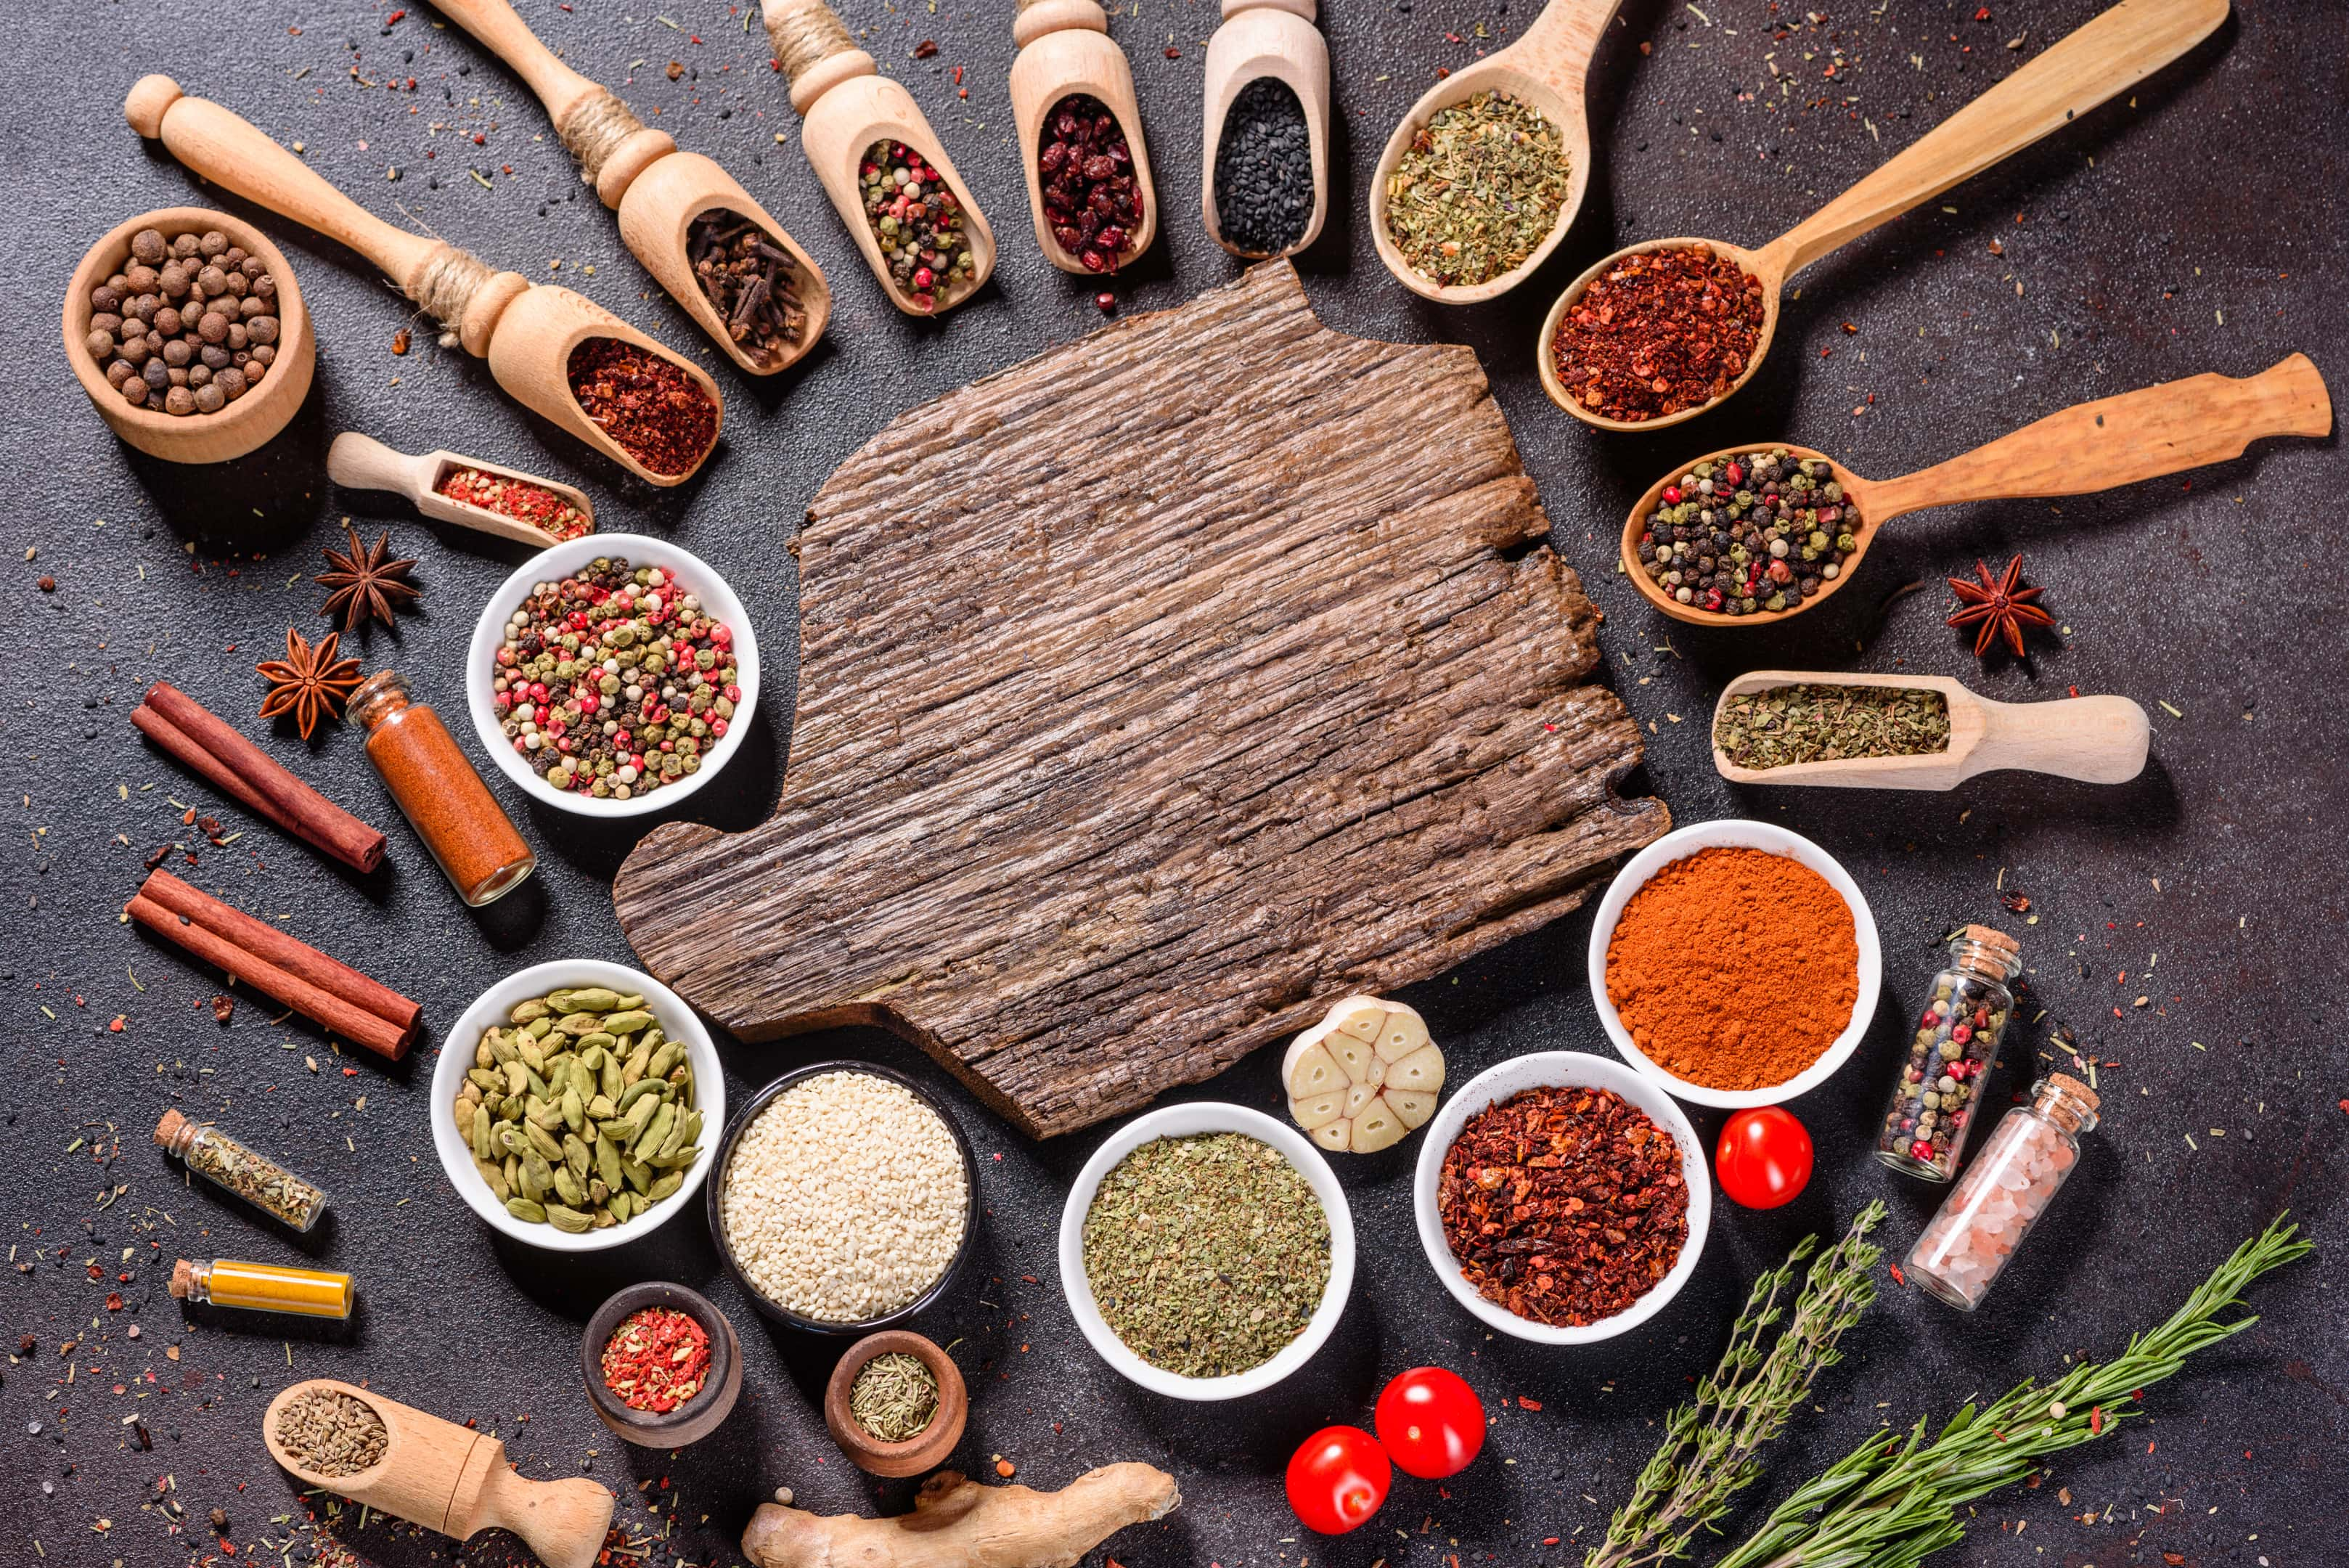 Various spices and herbs in wooden spoons surrounding wooden board